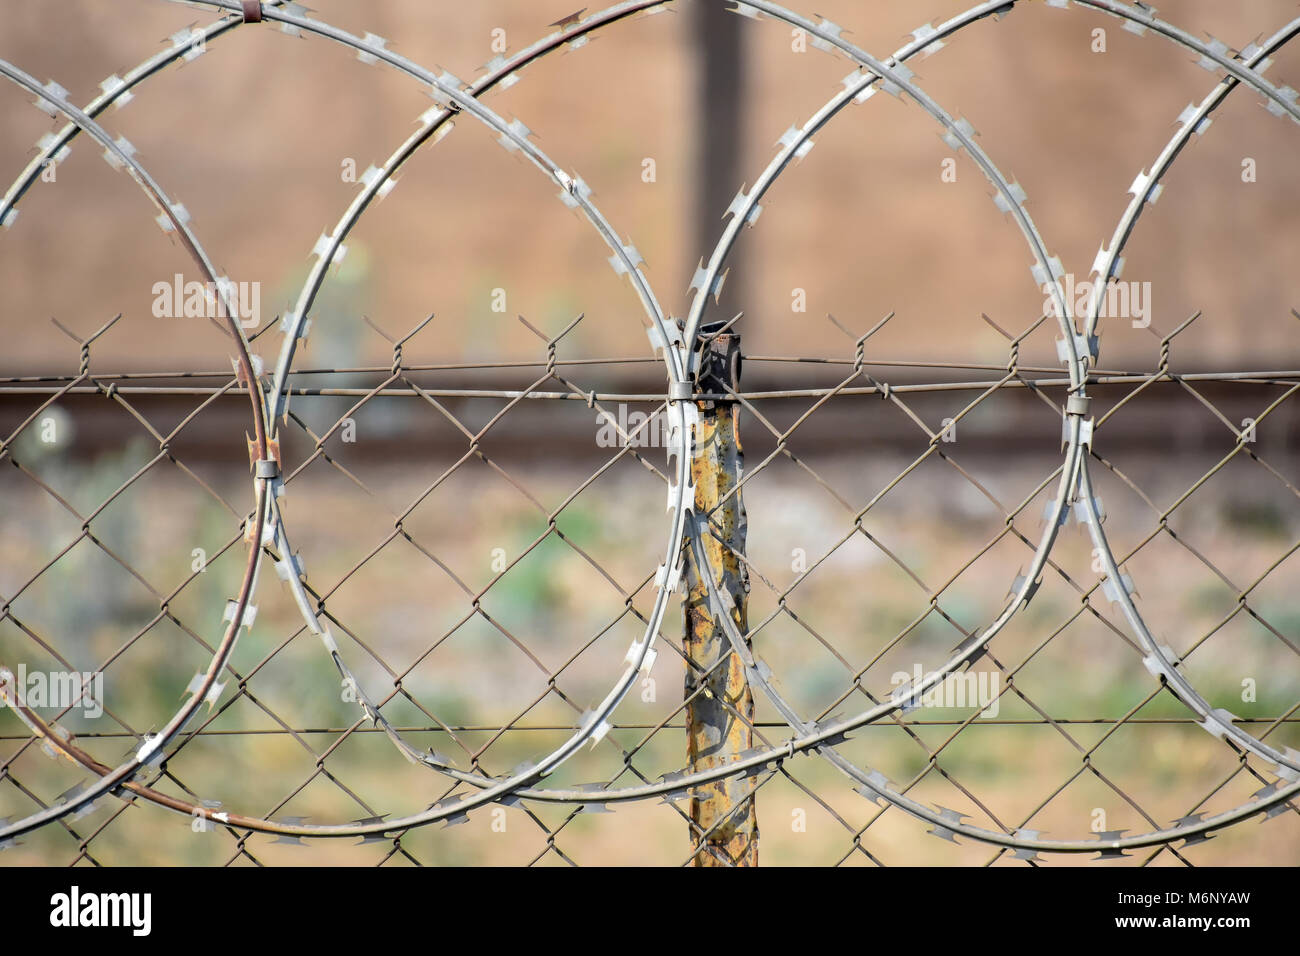 Barbed razor wire in Pretoria South Africa used as steel fencing constructed with sharp edges or points utilized - Stock Image